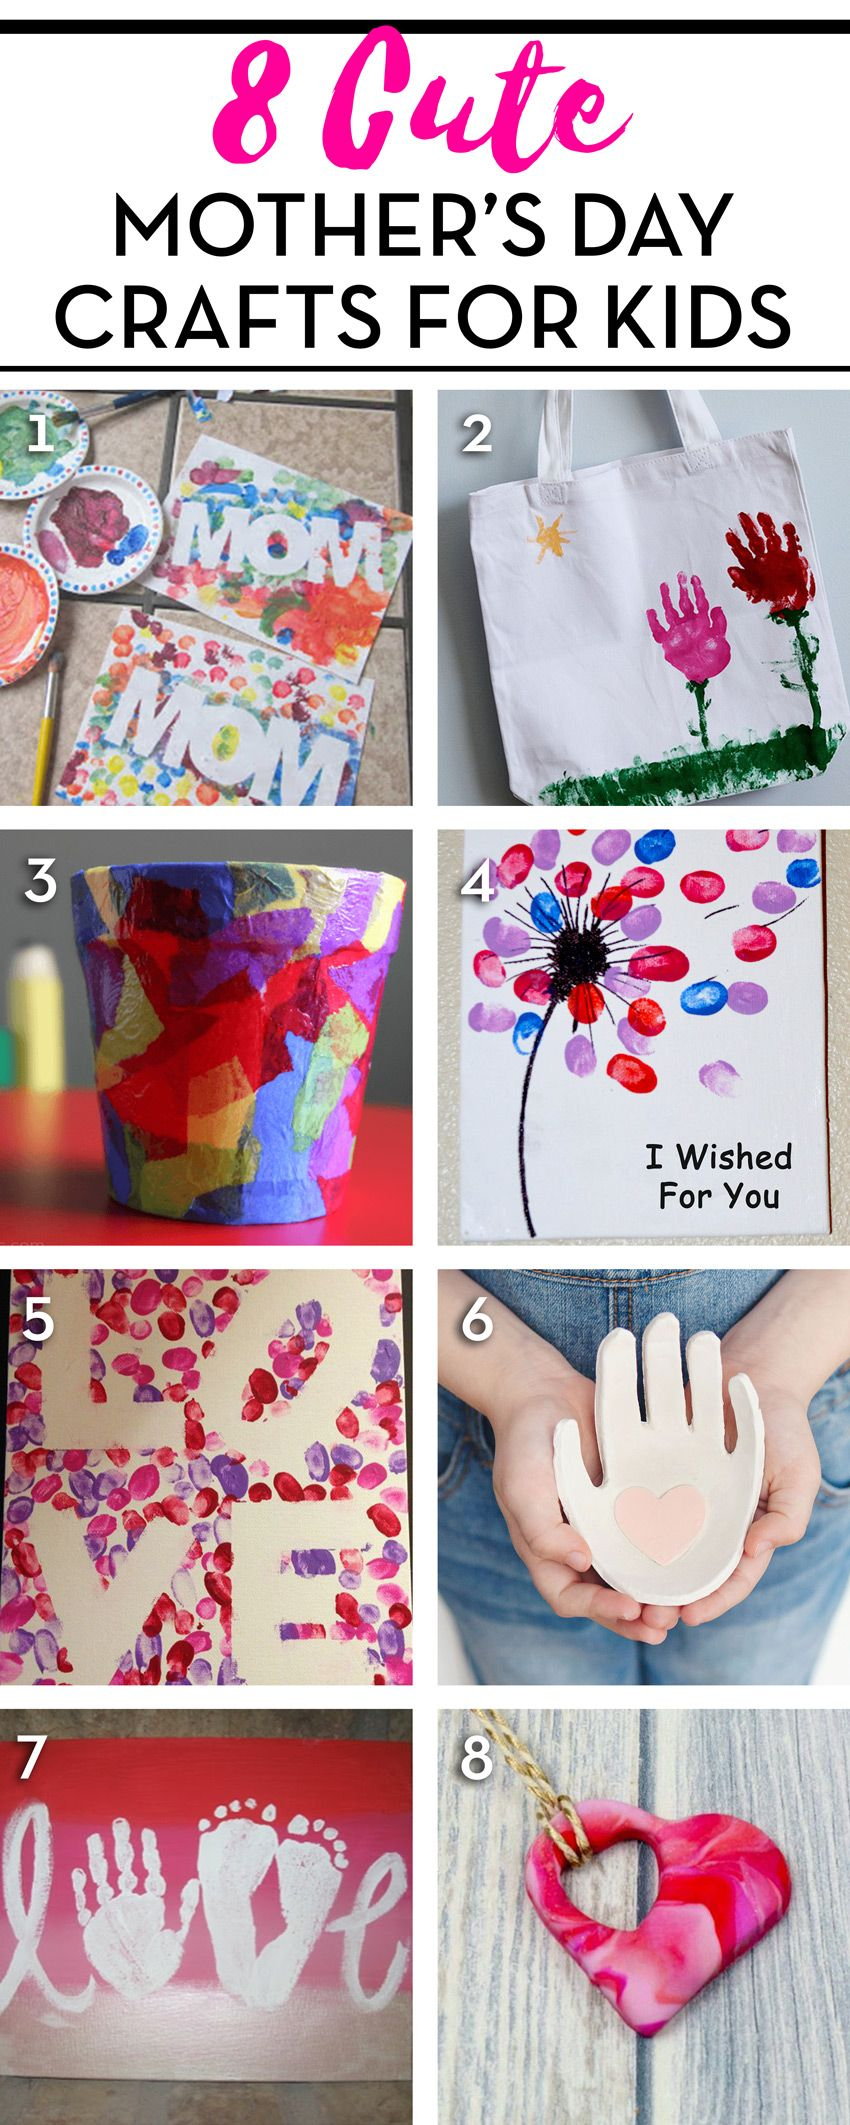 Here Are 8 Cute Mother S Day Crafts On Pinterest Diy Mother S